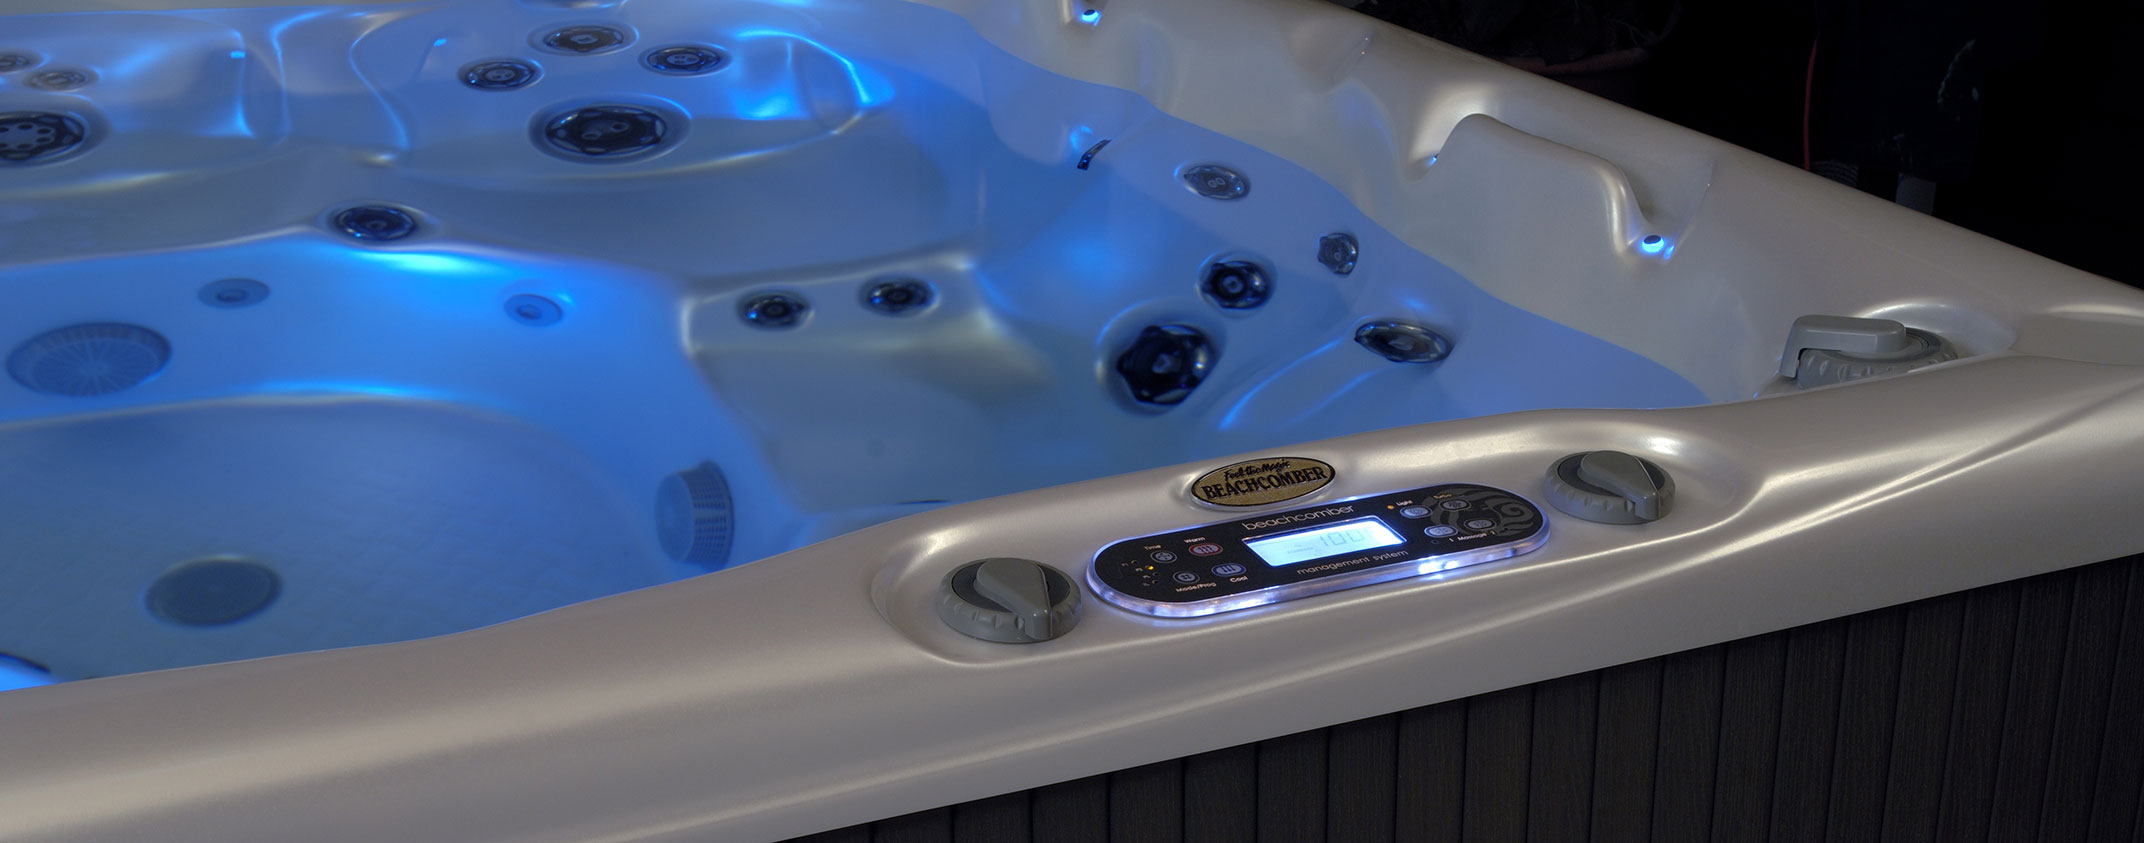 Jacuzzi Hot Tubs | Allpools and Spas, Somerset